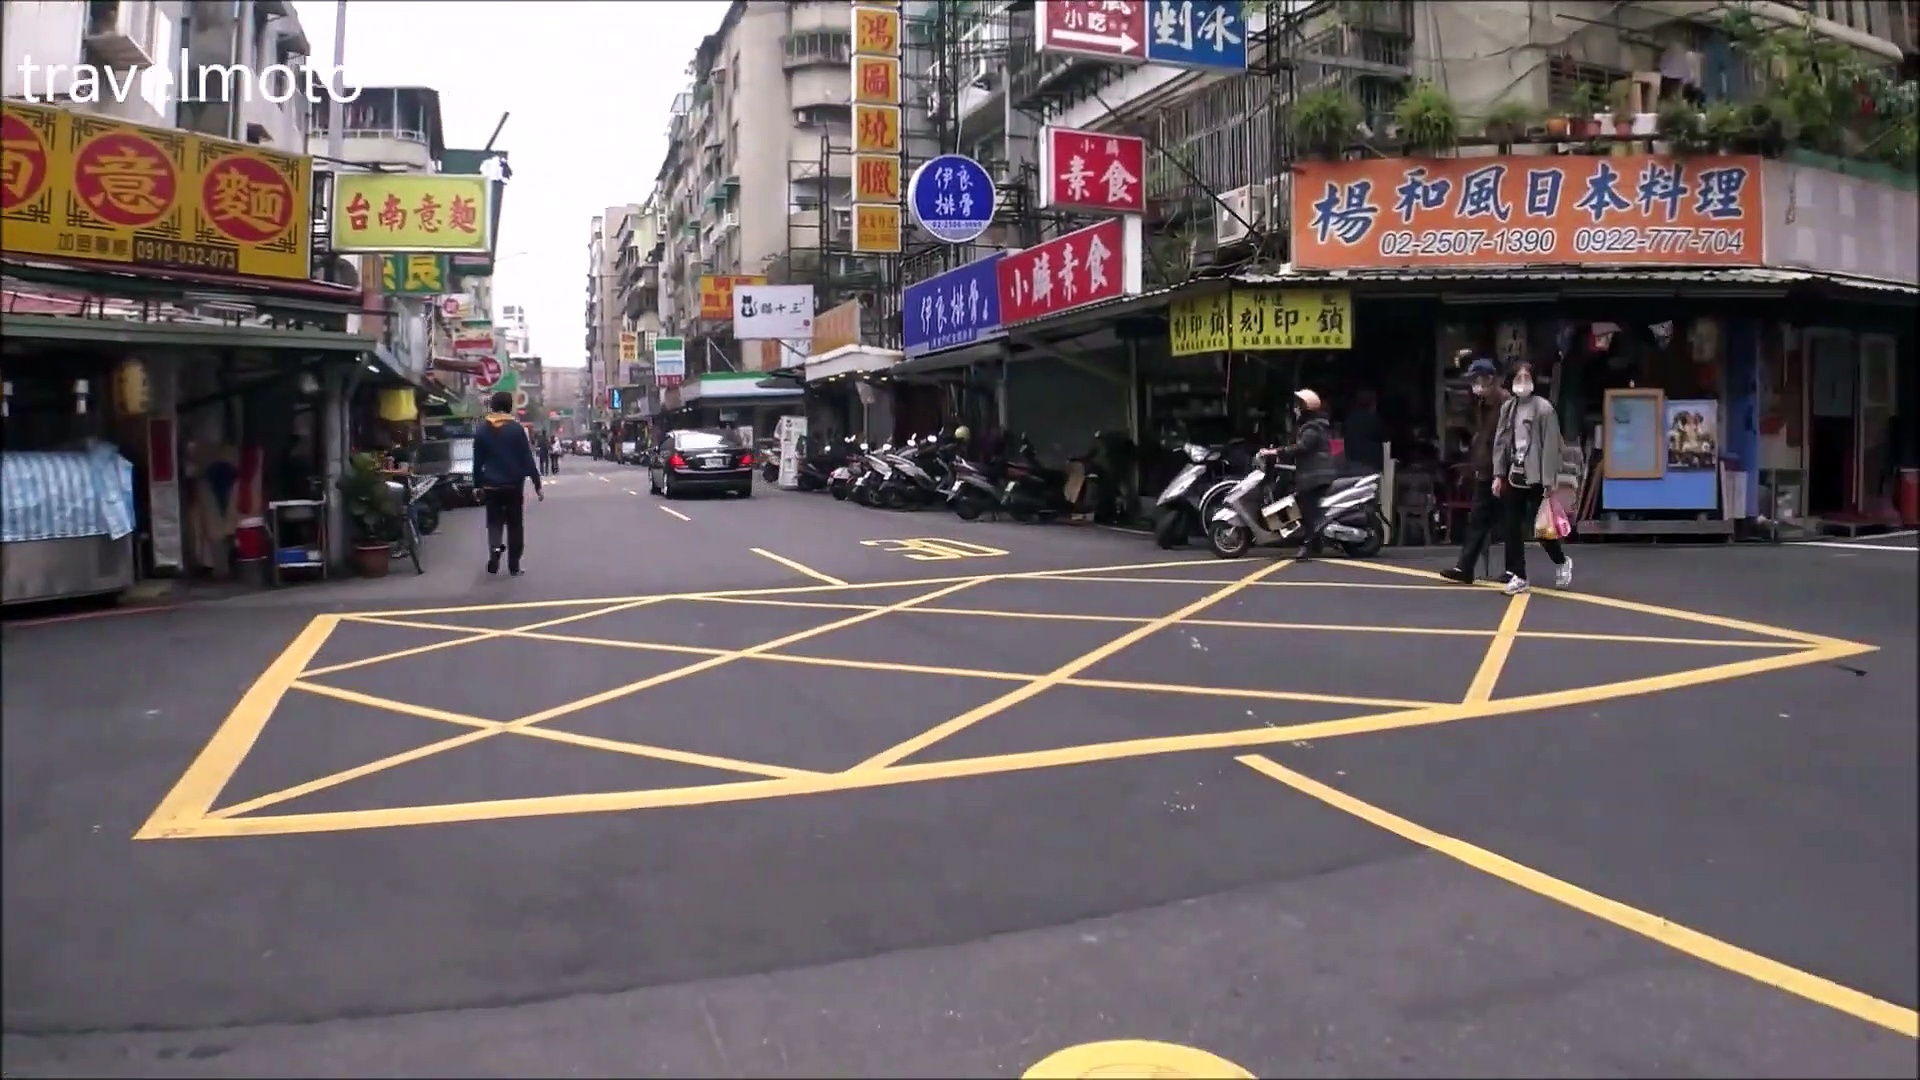 Motorcycles in Taiwan